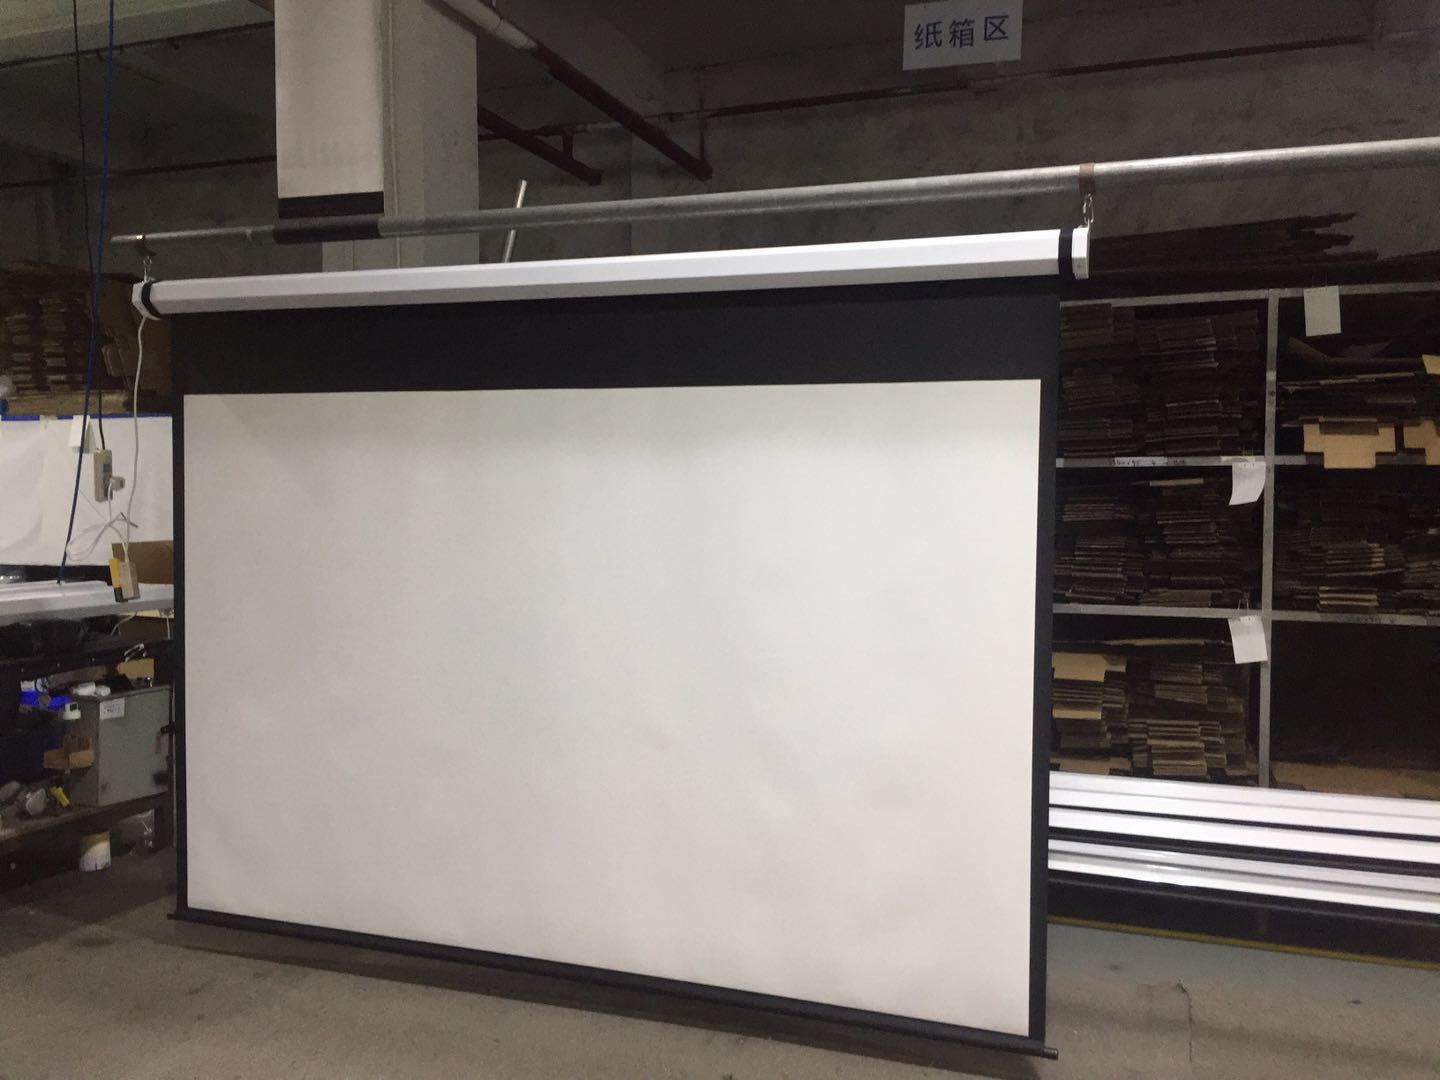 Best Motorized projection screen 2019 with competitive price